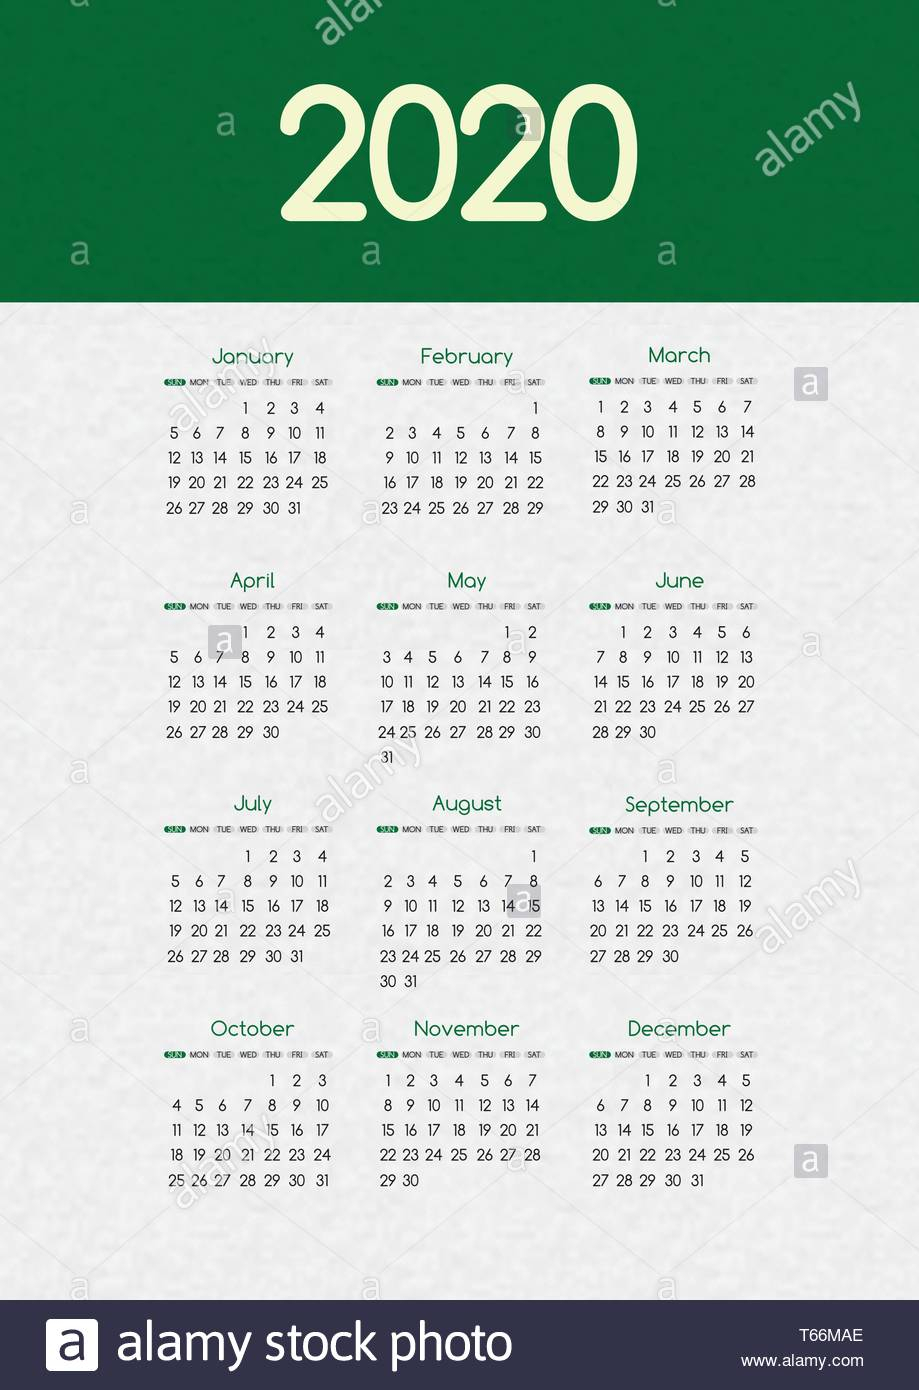 2020 New Year Vector Calendar Modern Simple Green Design